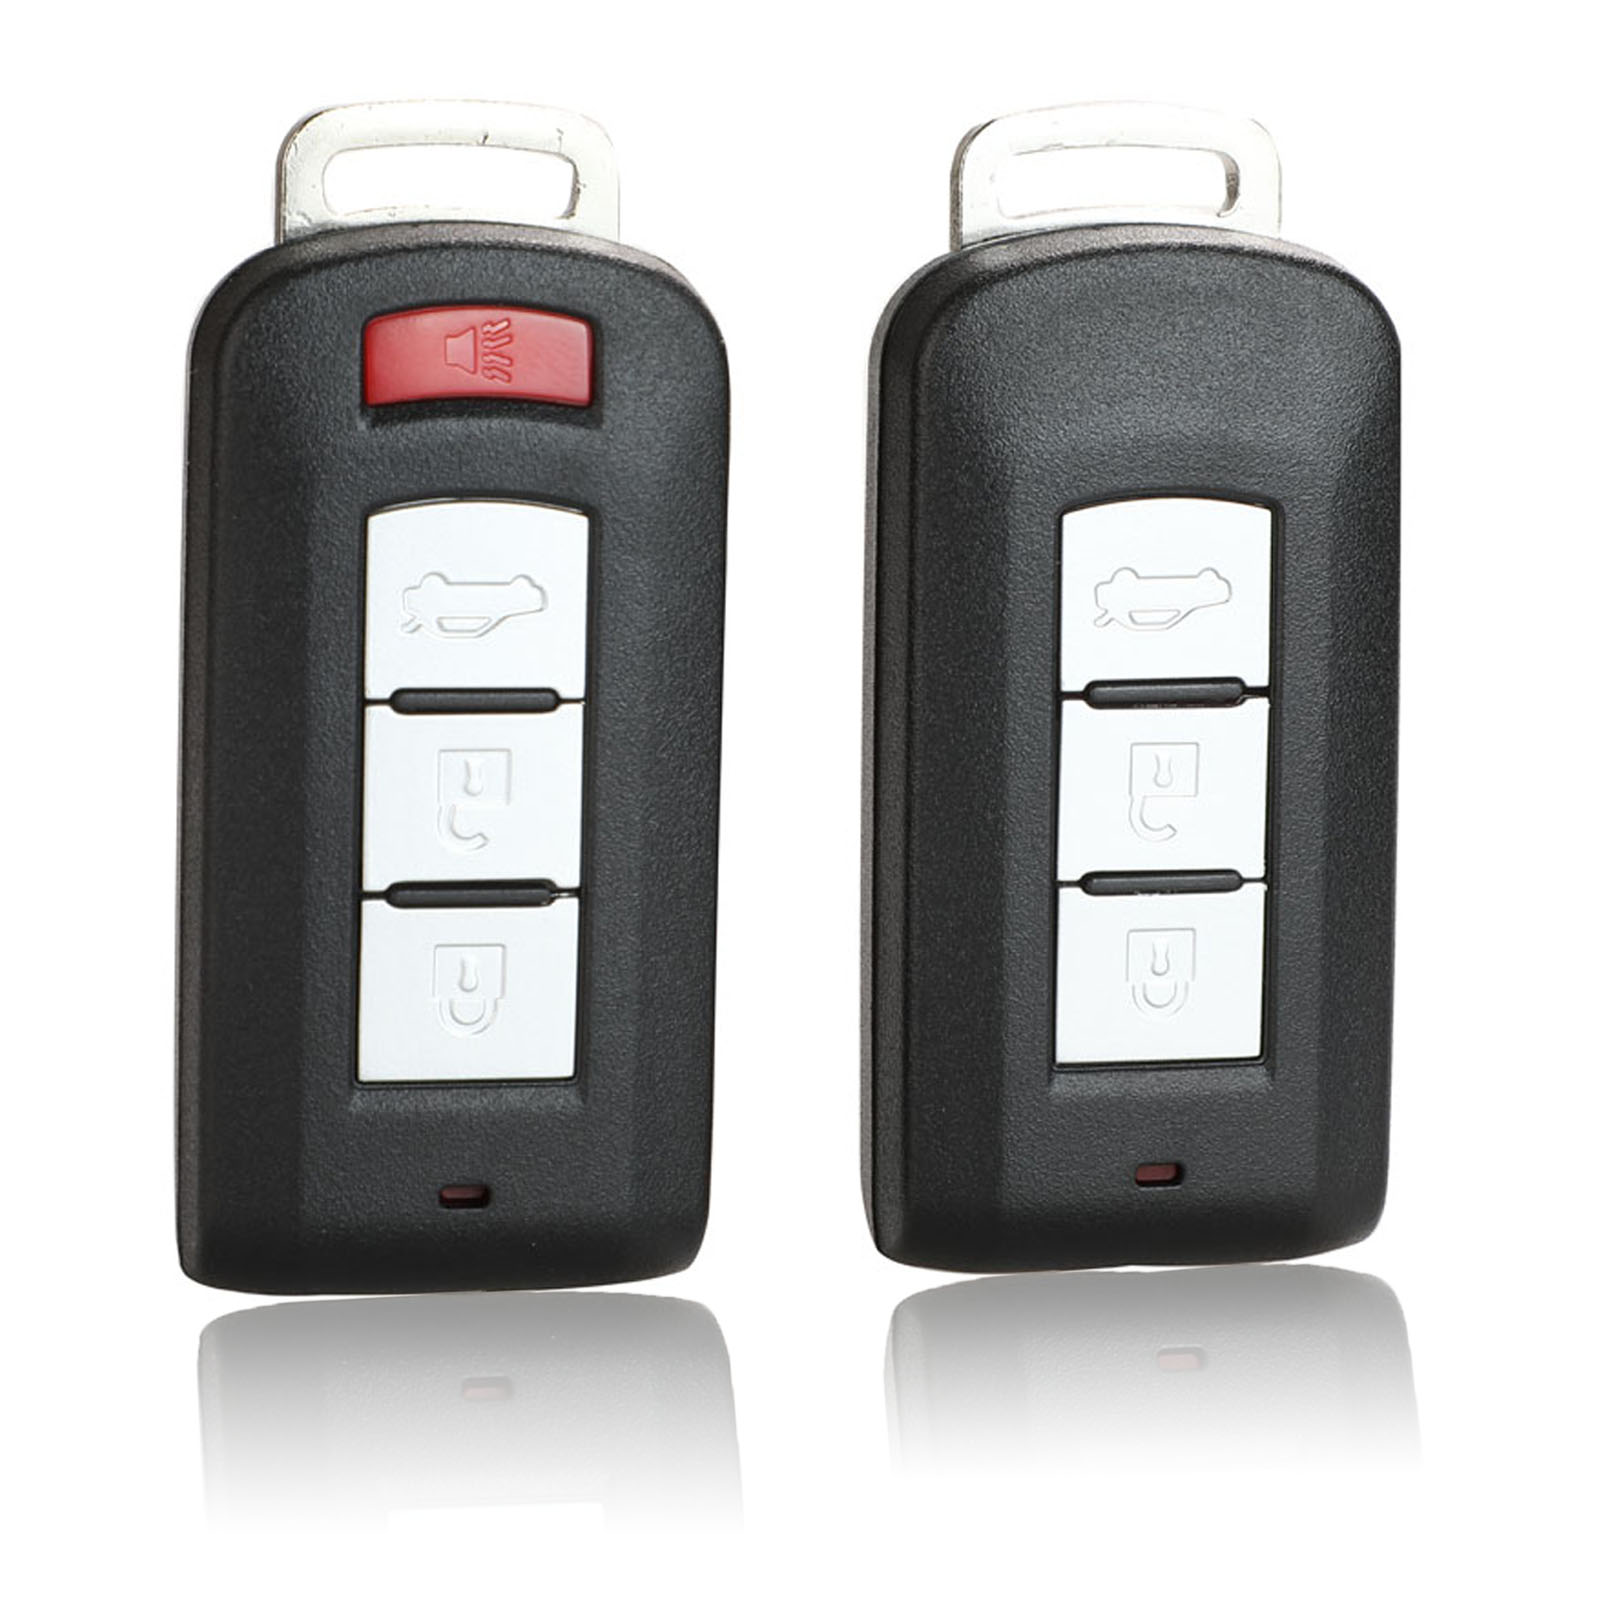 jingyuqin Smart Remote Car <font><b>Key</b></font> Shell Case For <font><b>Mitsubishi</b></font> Outlander 2016 Lancer 10 Pajero Sport EX ASX Colt Grandis <font><b>L200</b></font> Cover image